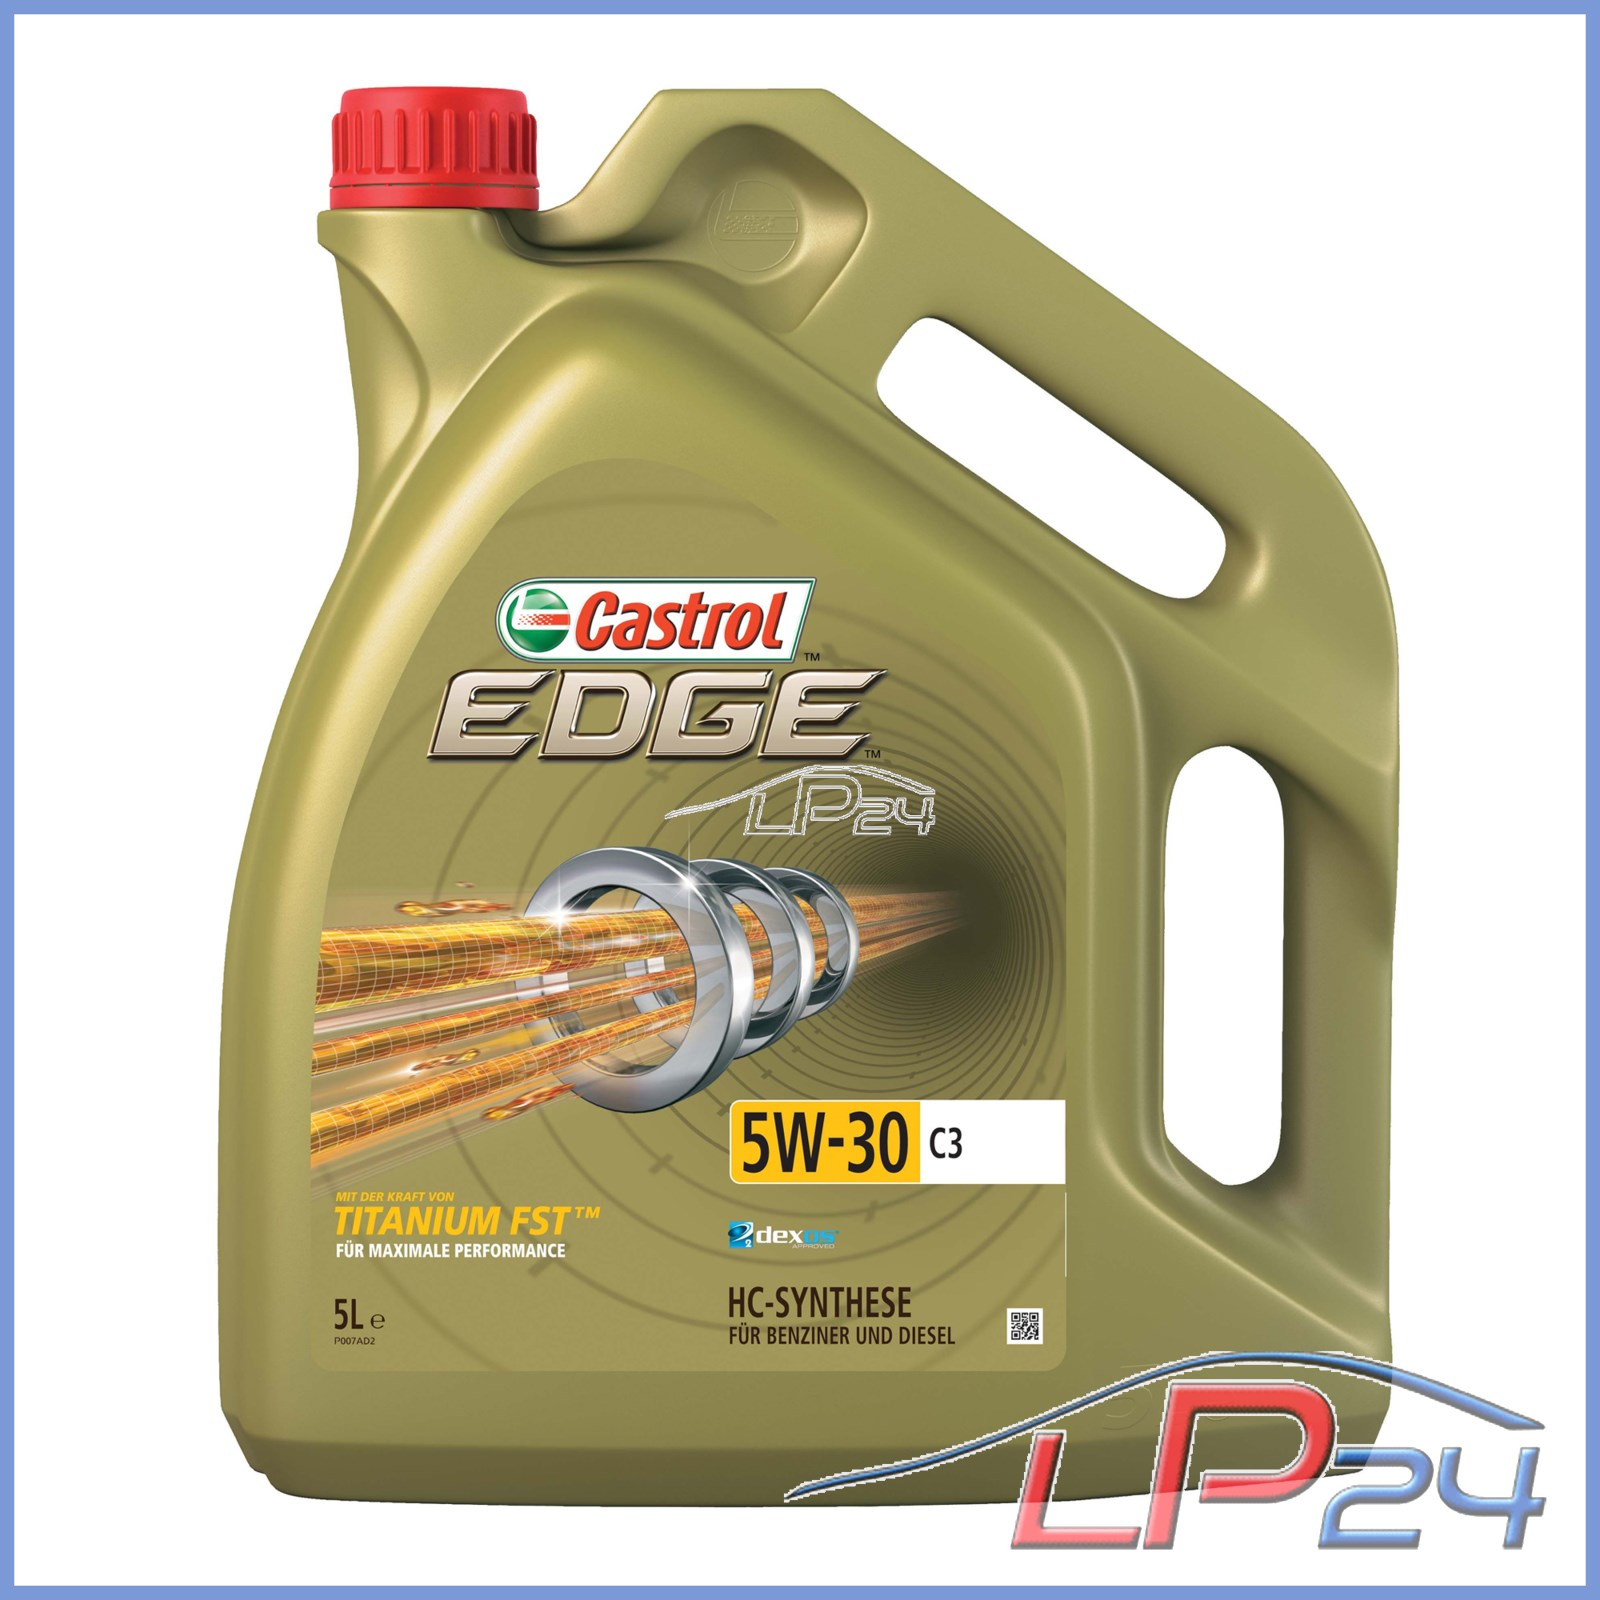 5 litres castrol edge titanium fst 5w 30 c3 huile de. Black Bedroom Furniture Sets. Home Design Ideas